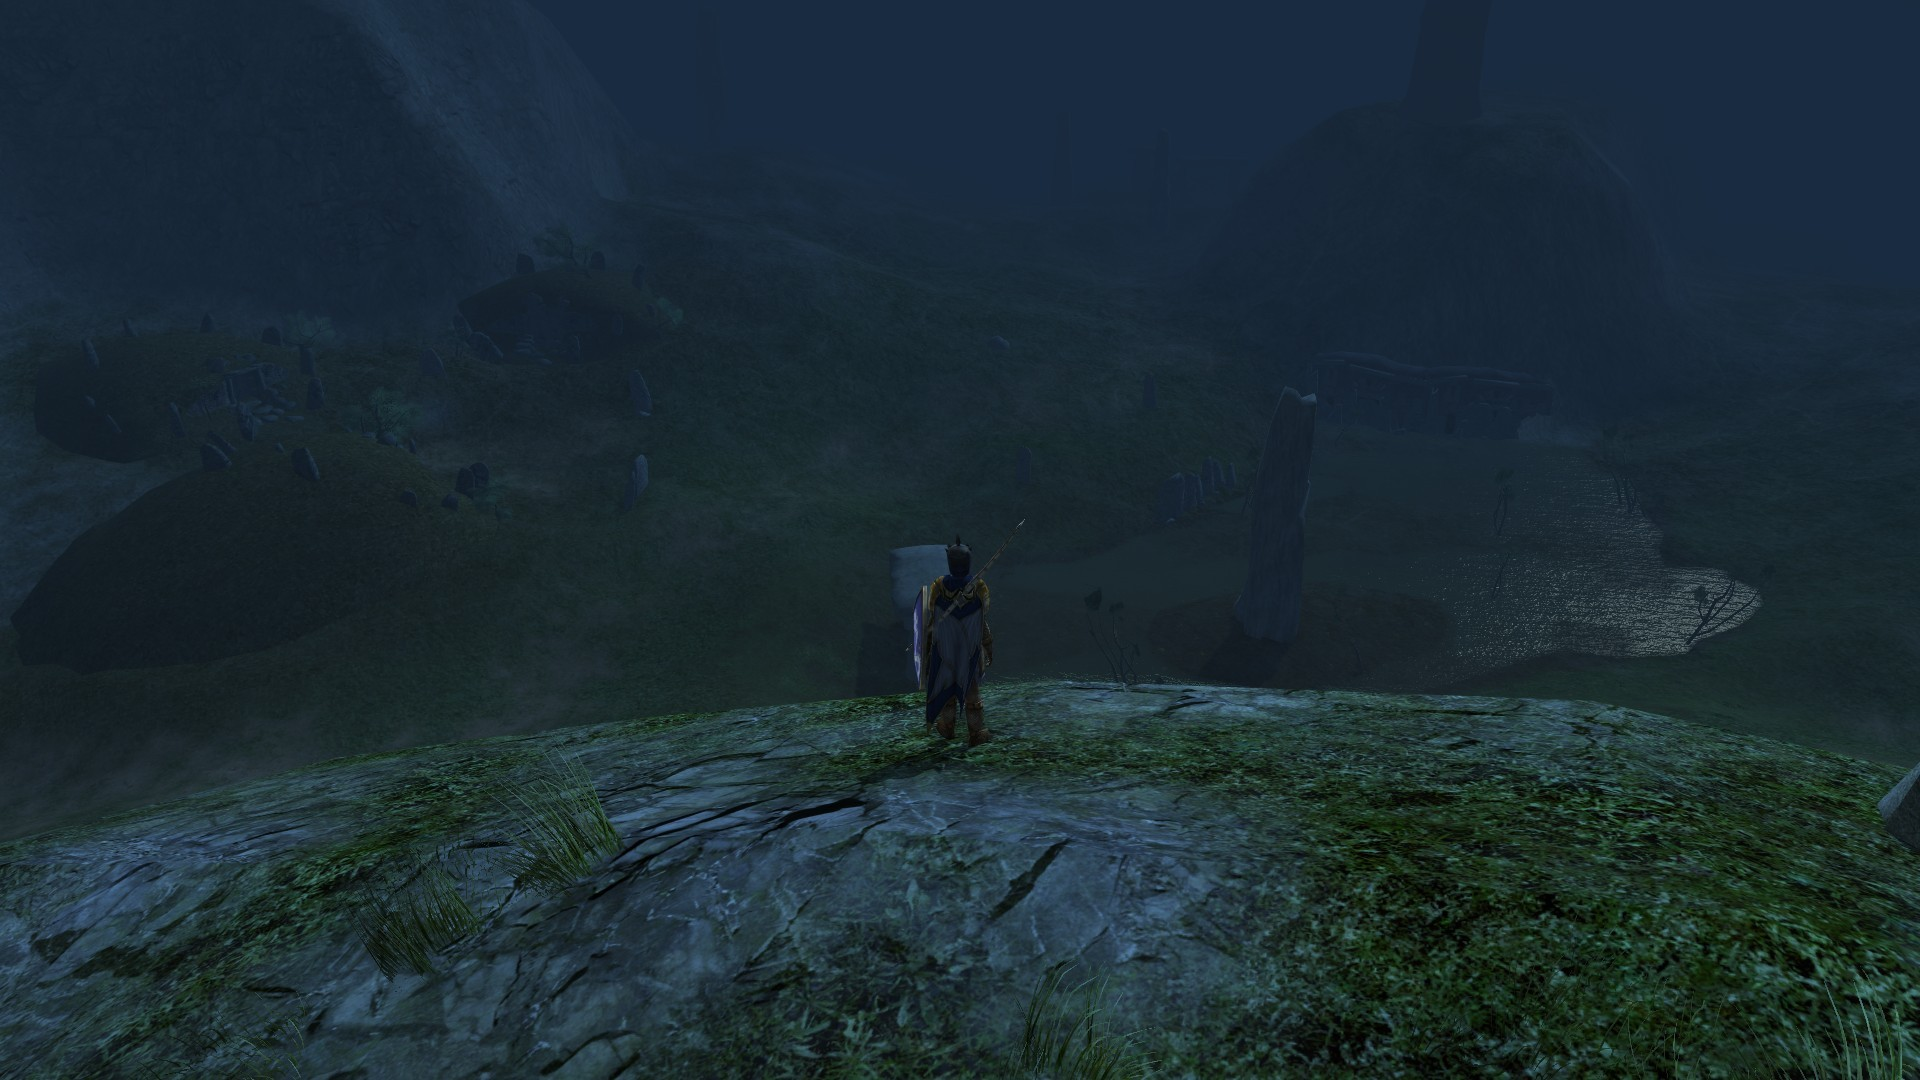 Lord of the Rings Online - Only death awaits